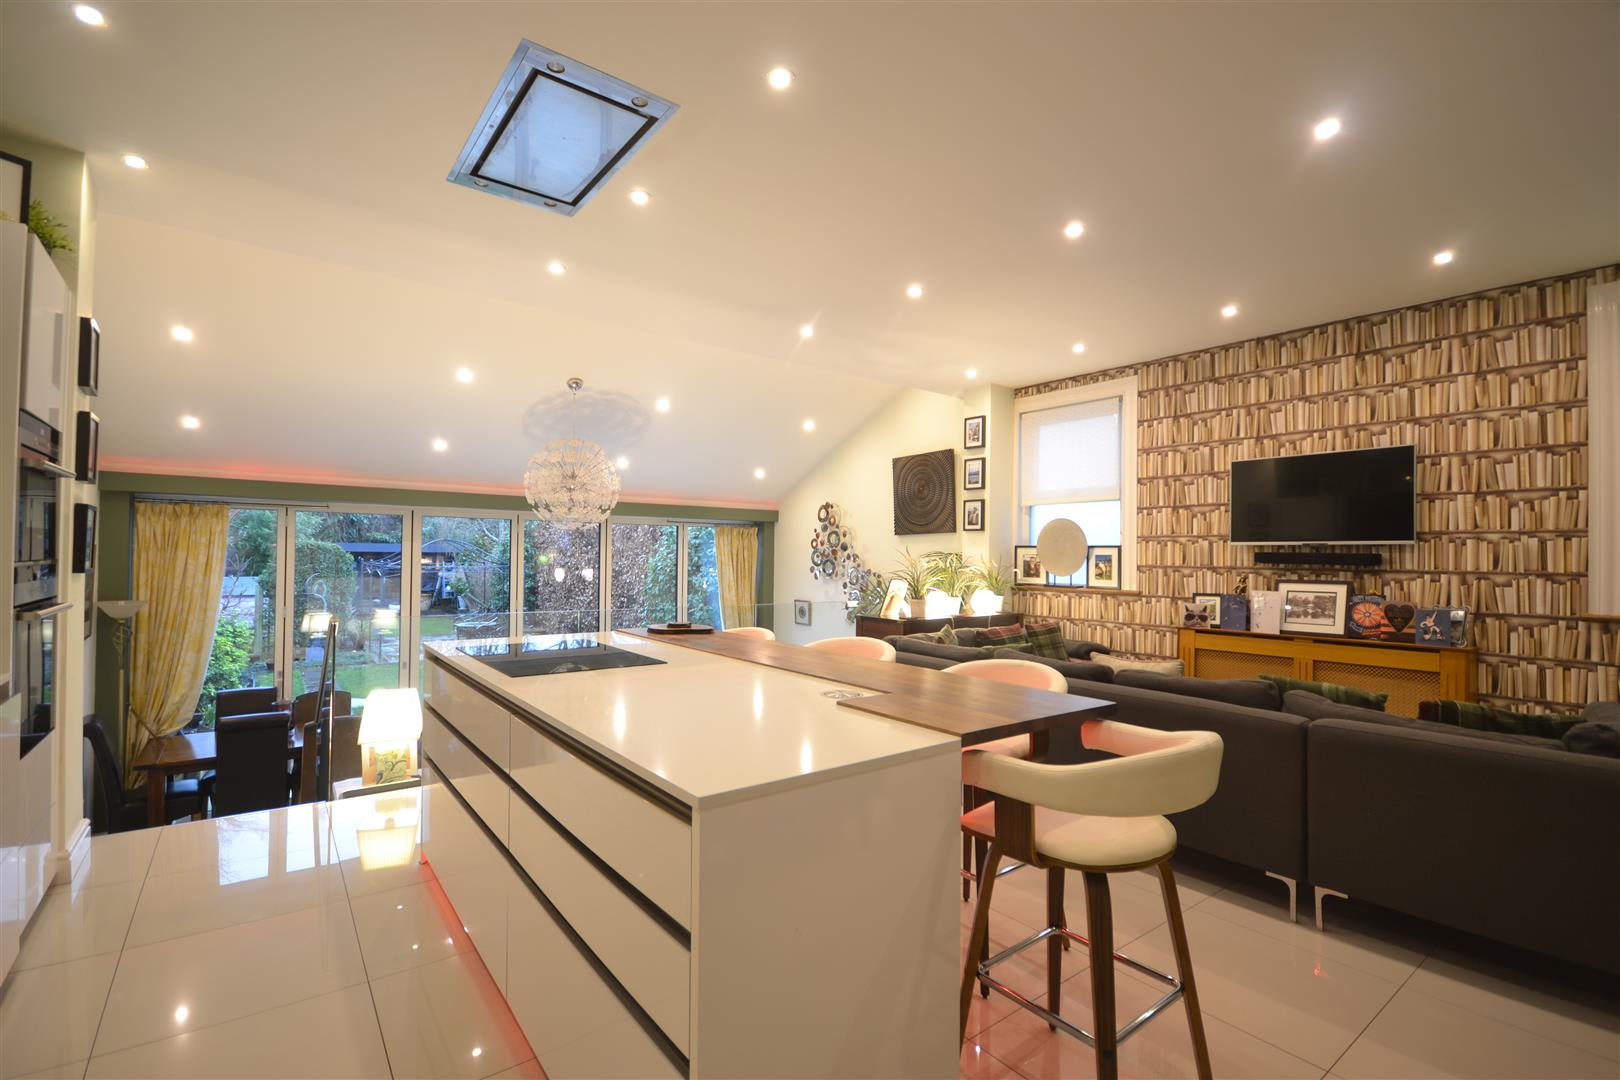 KITCHEN DINER.jpg